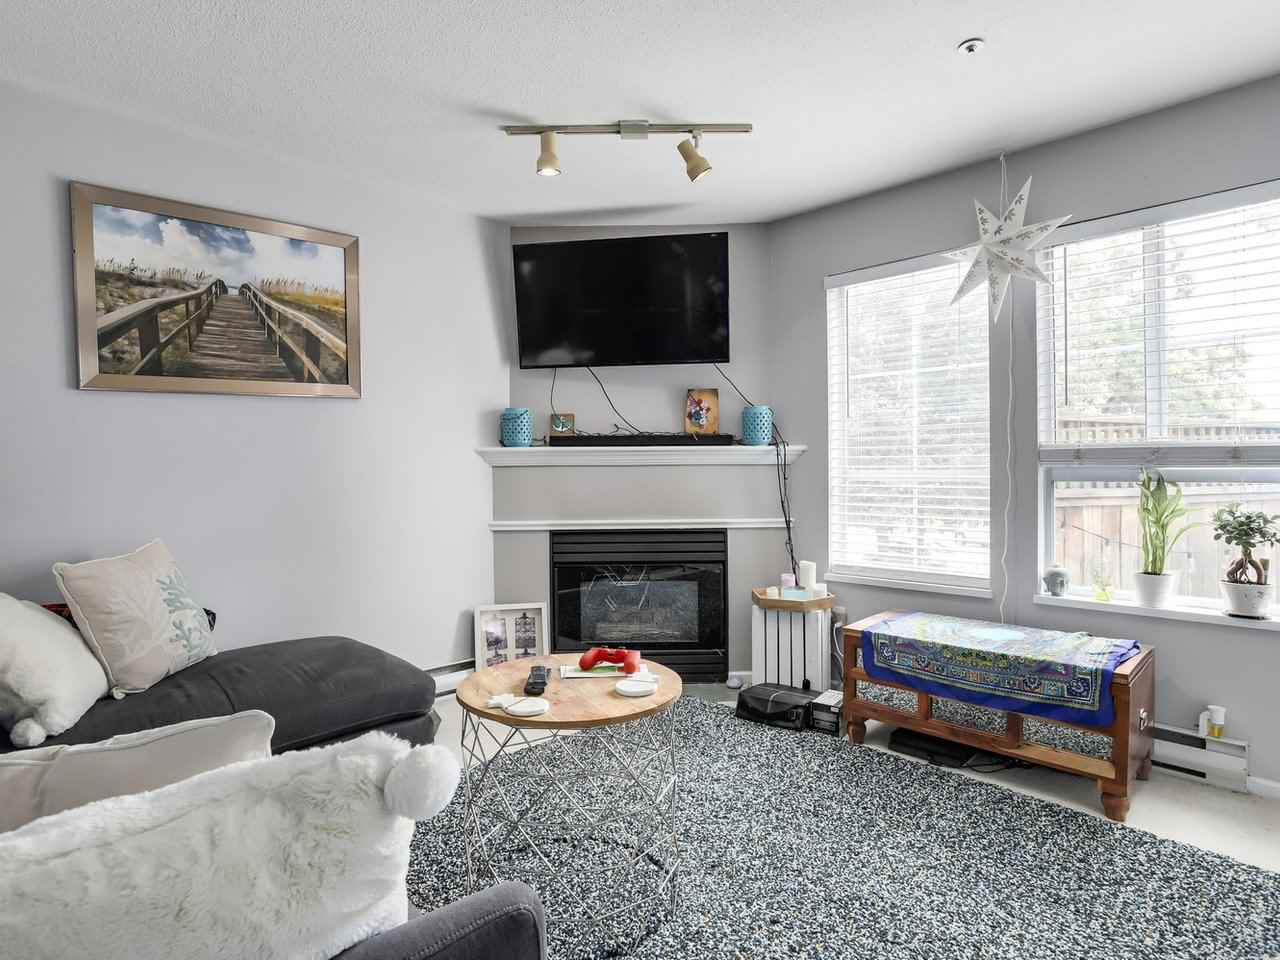 Photo 4: Photos: 107 295 SCHOOLHOUSE Street in Coquitlam: Maillardville Condo for sale : MLS®# R2286753